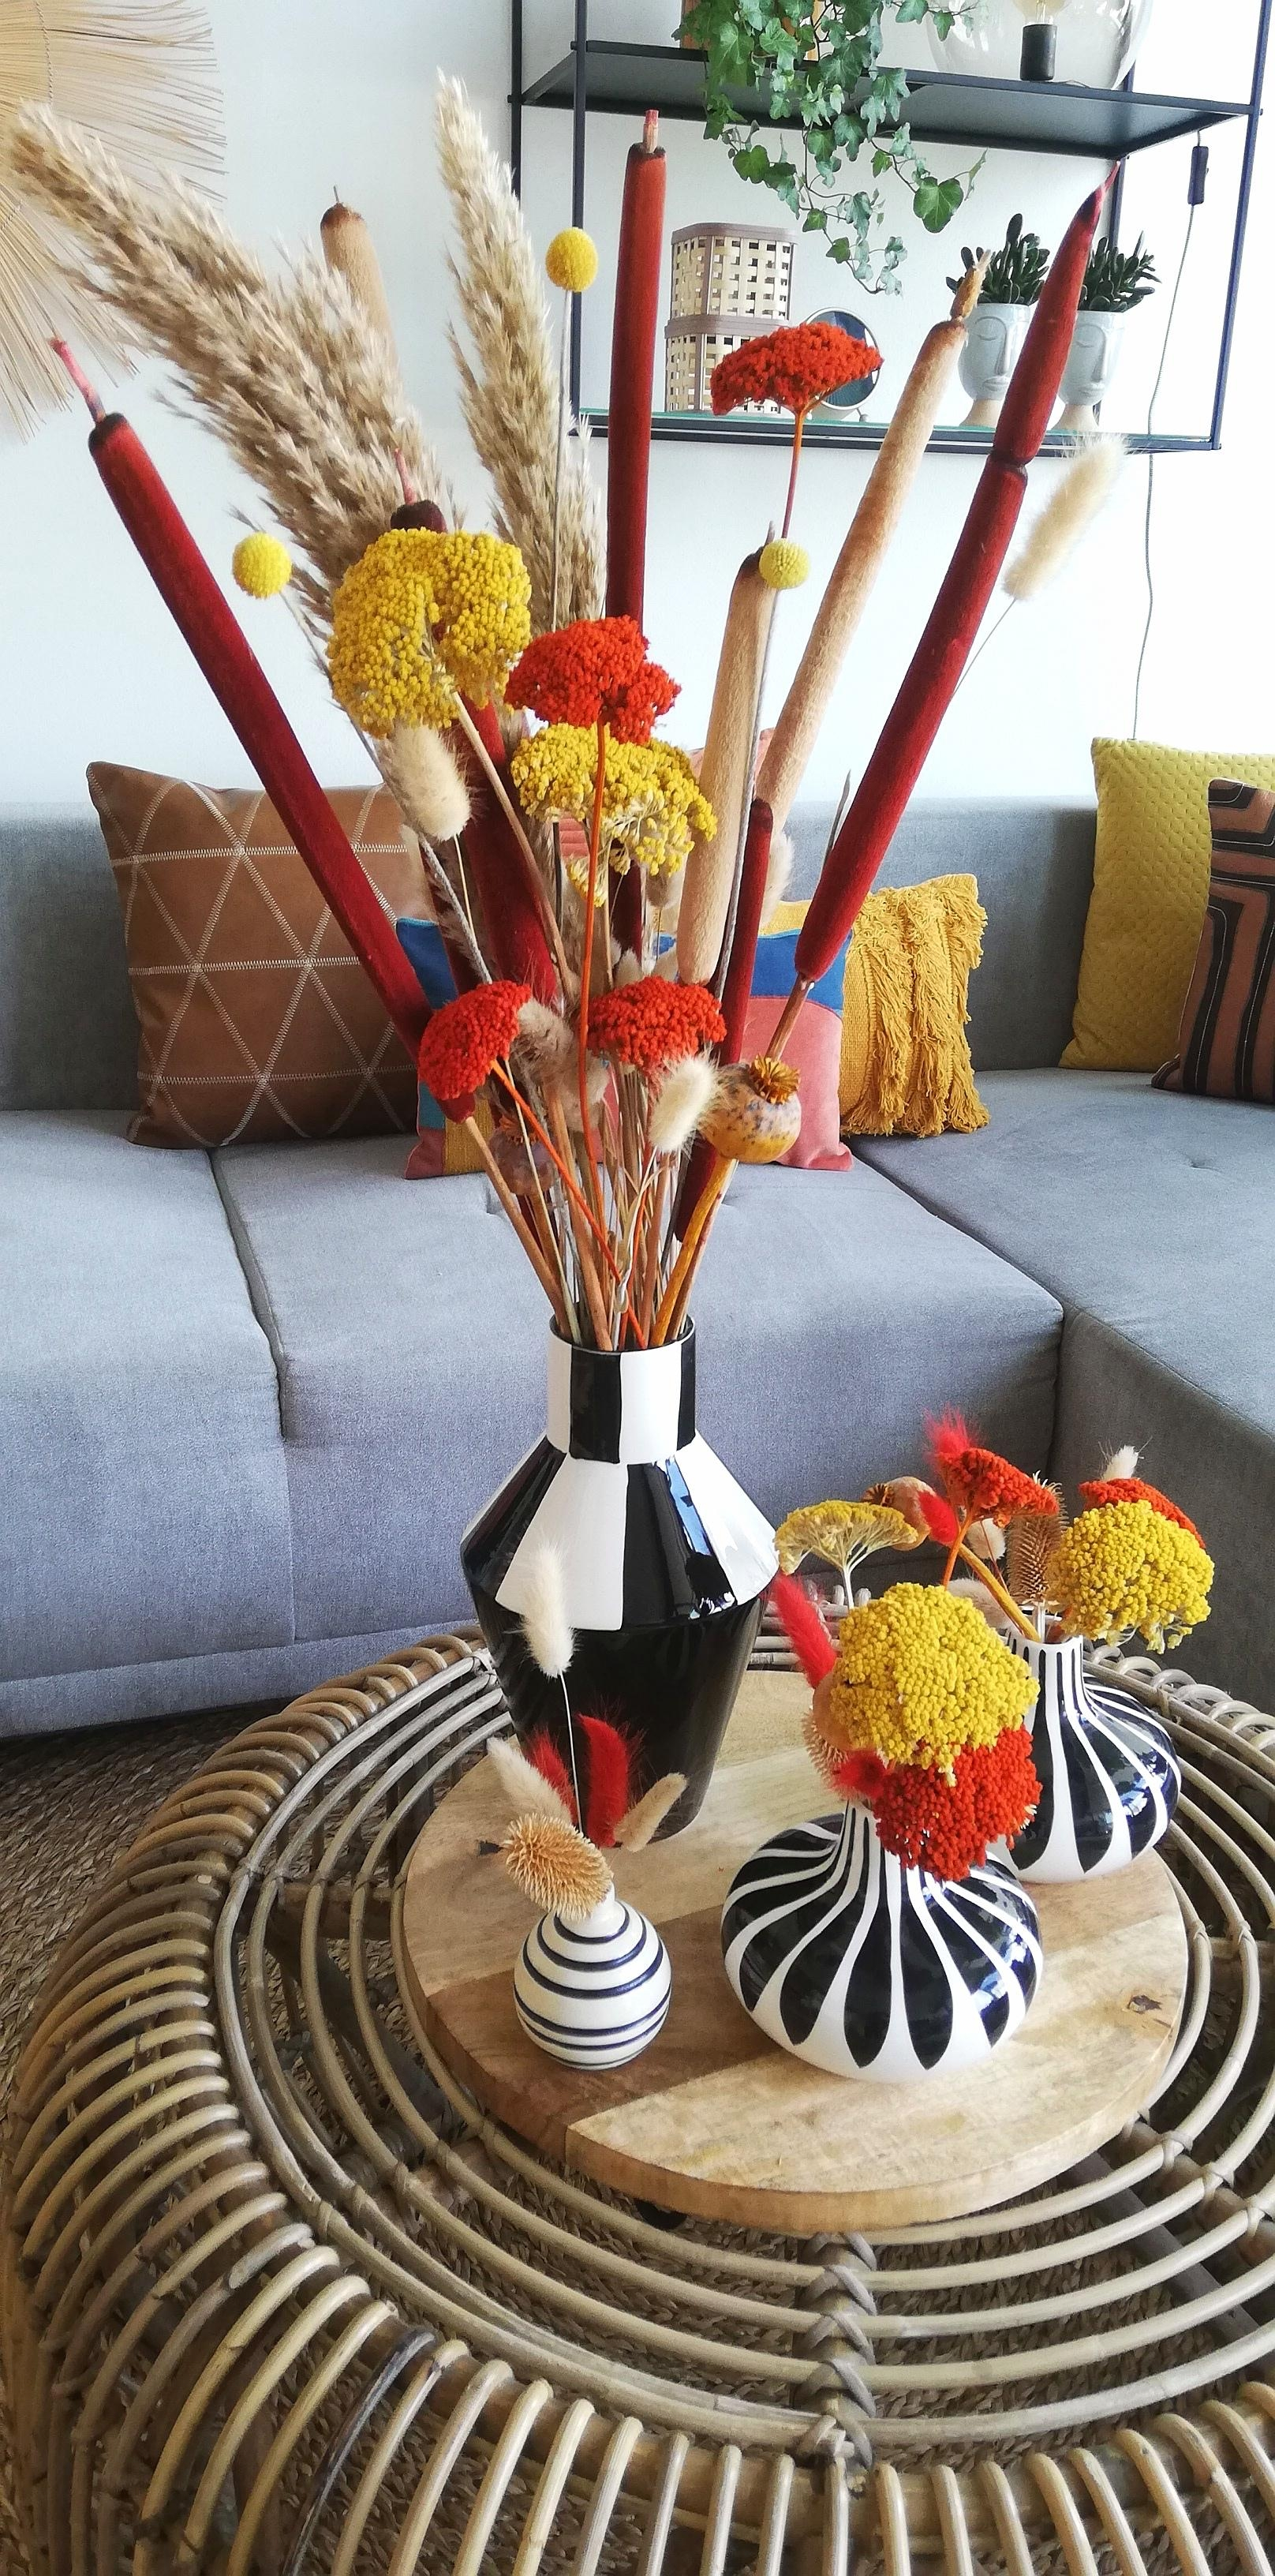 #falldecor #decoration #decor #living #homedecor #home #living #trockenblumen #fall #blackandwhite #vase #design #colour